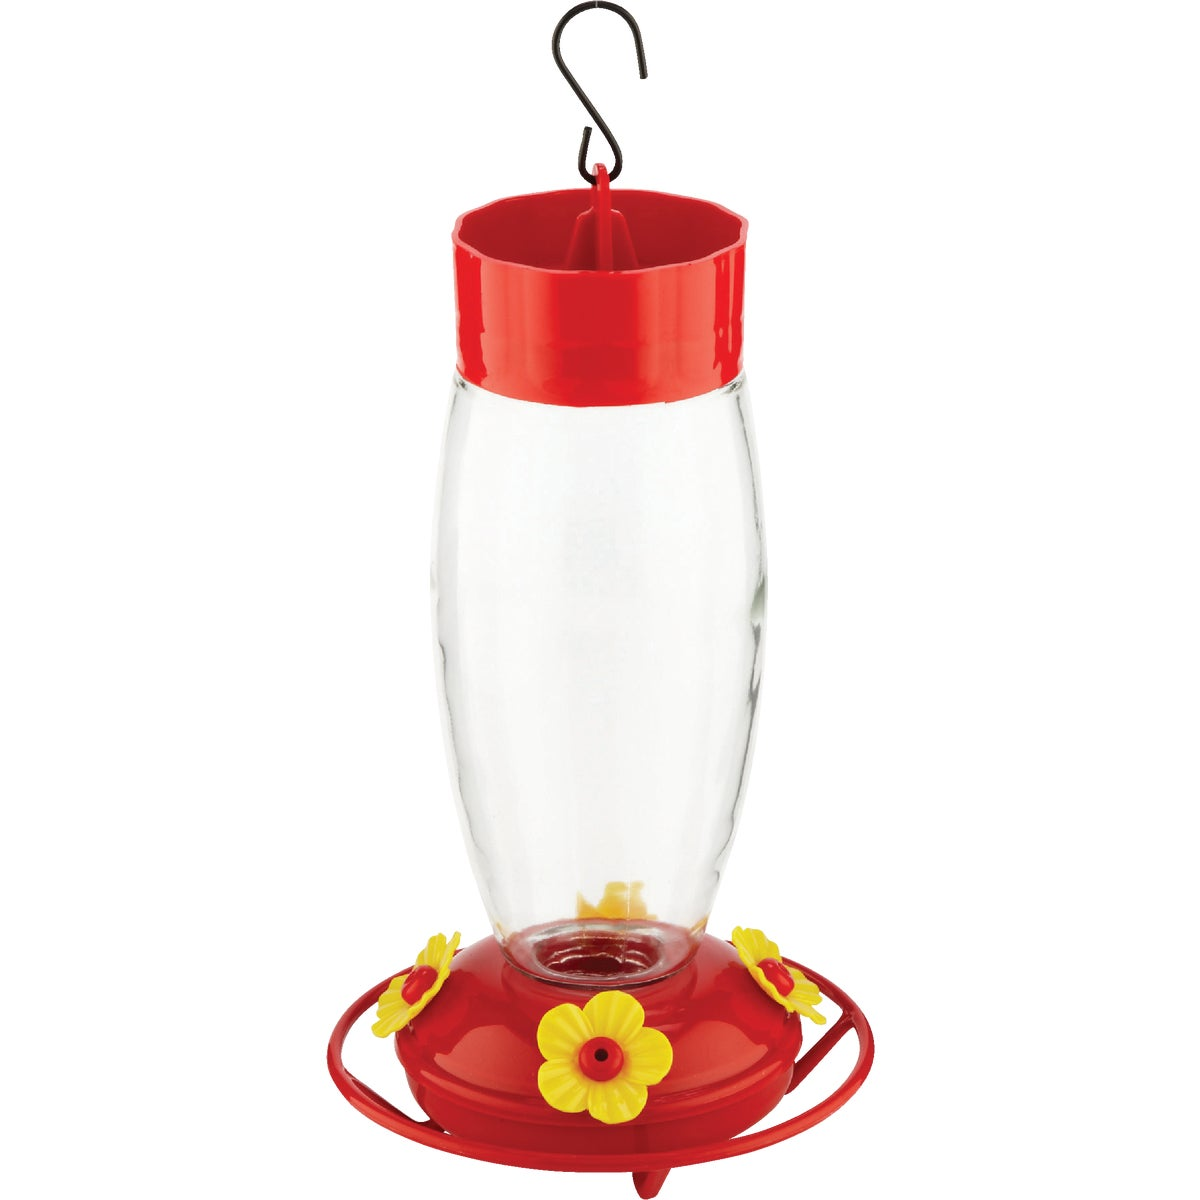 DLX HUMMINGBIRD FEEDER - 38105 by Hiatt Mfg